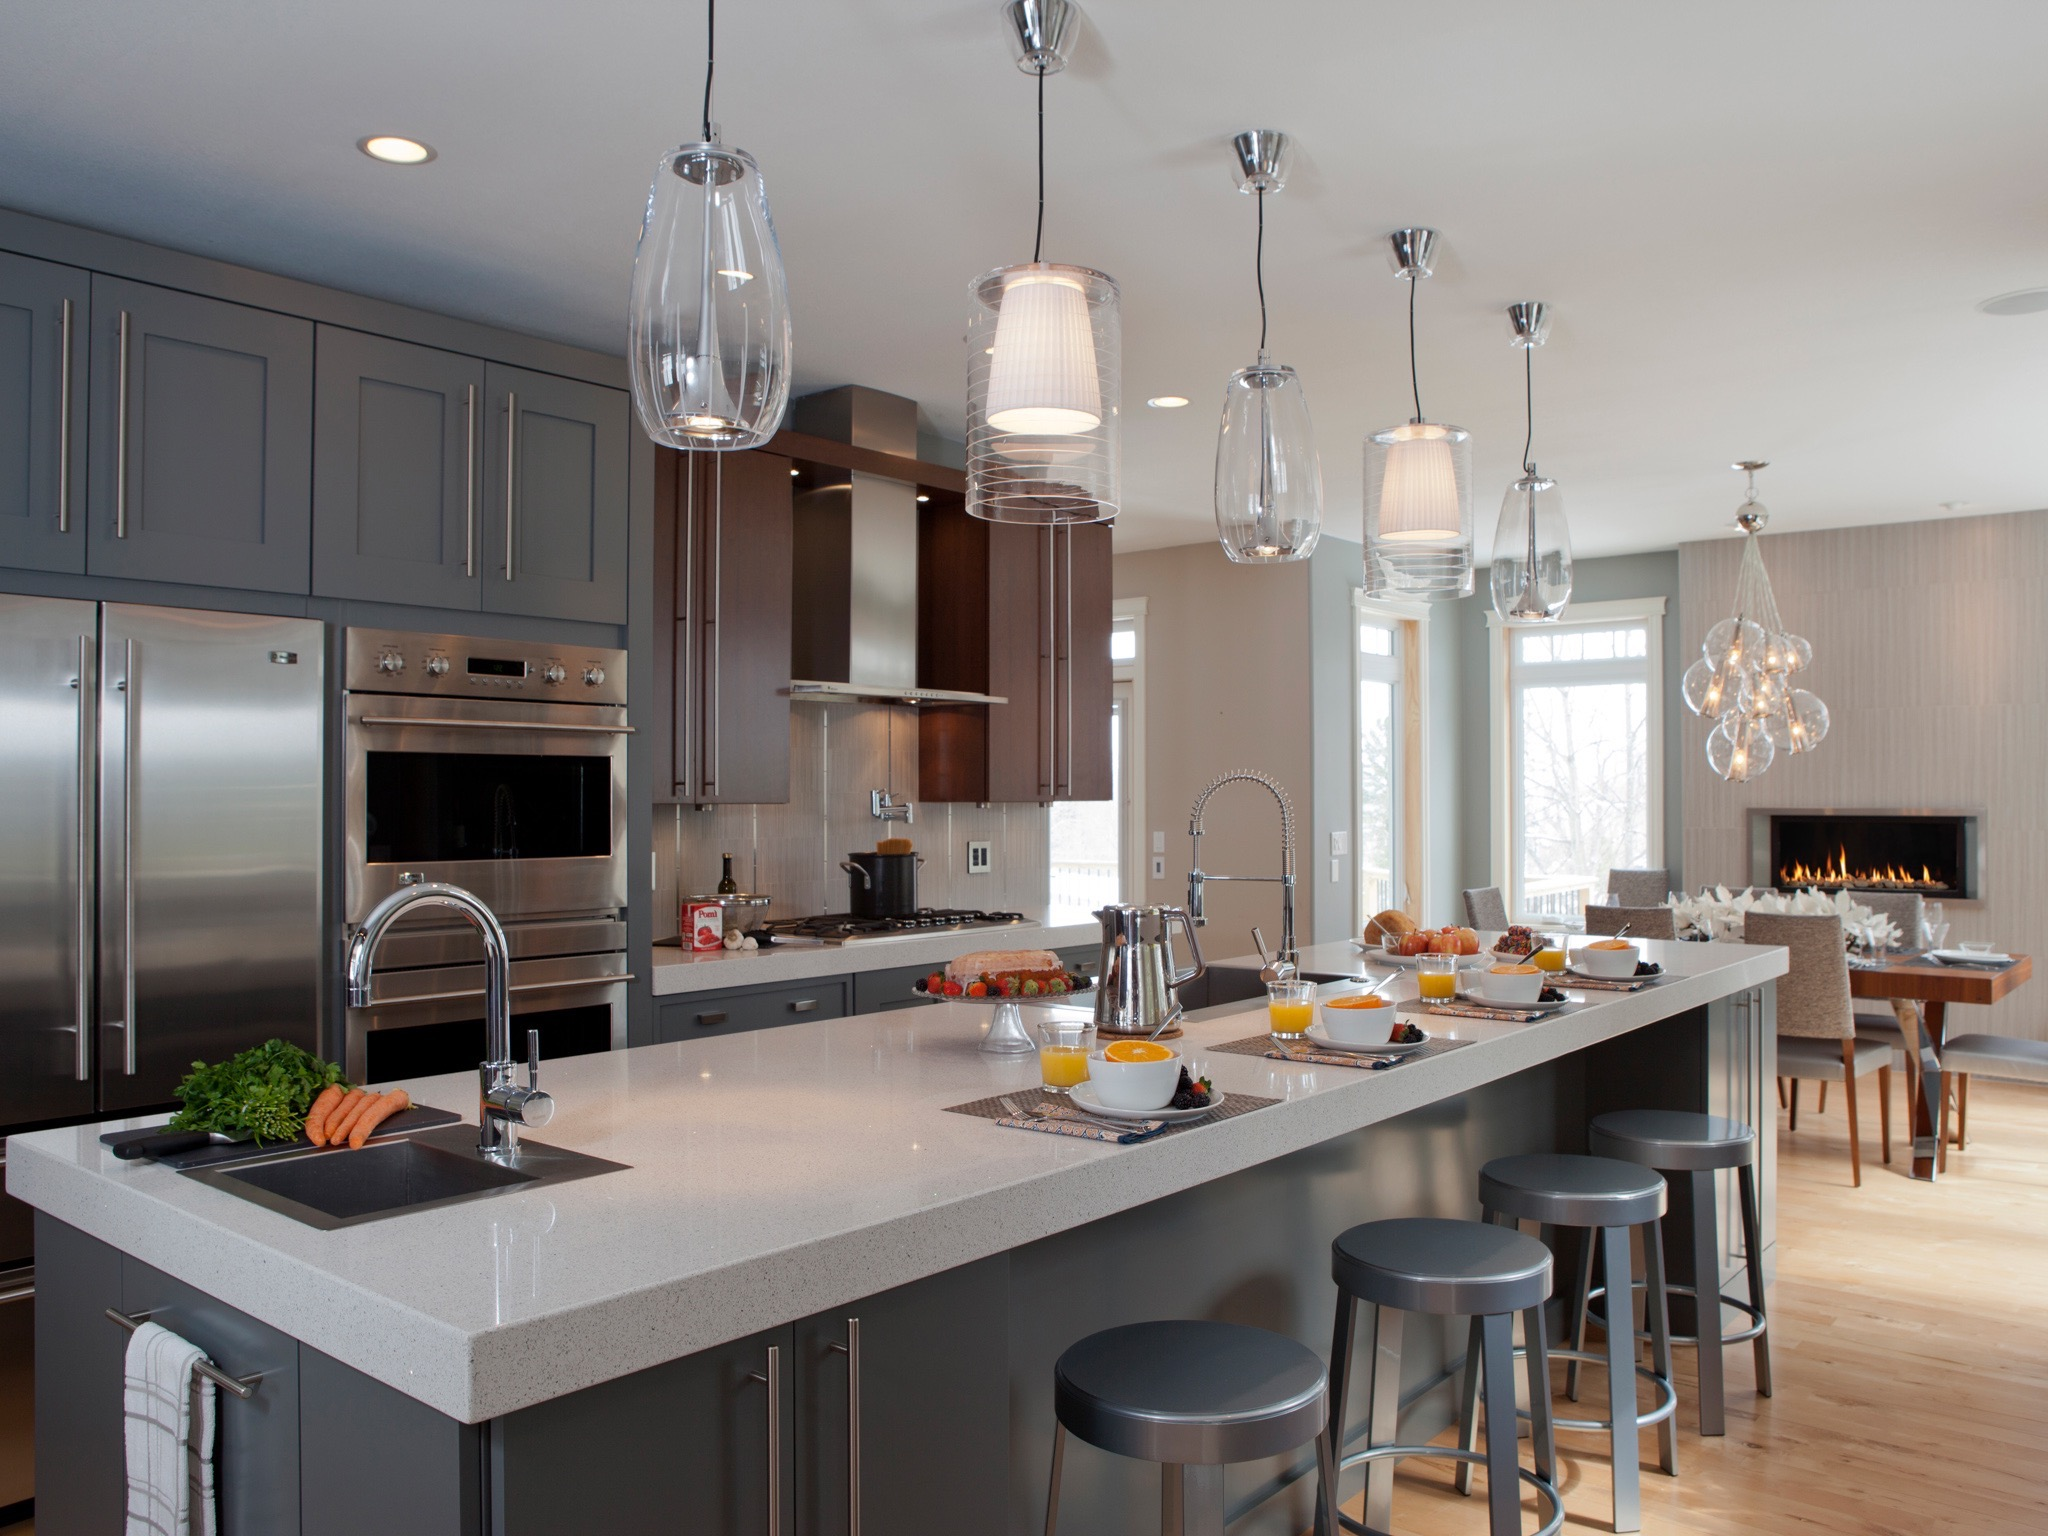 Modern Stunning Pentant Lights For Kitchen (View 32 of 39)